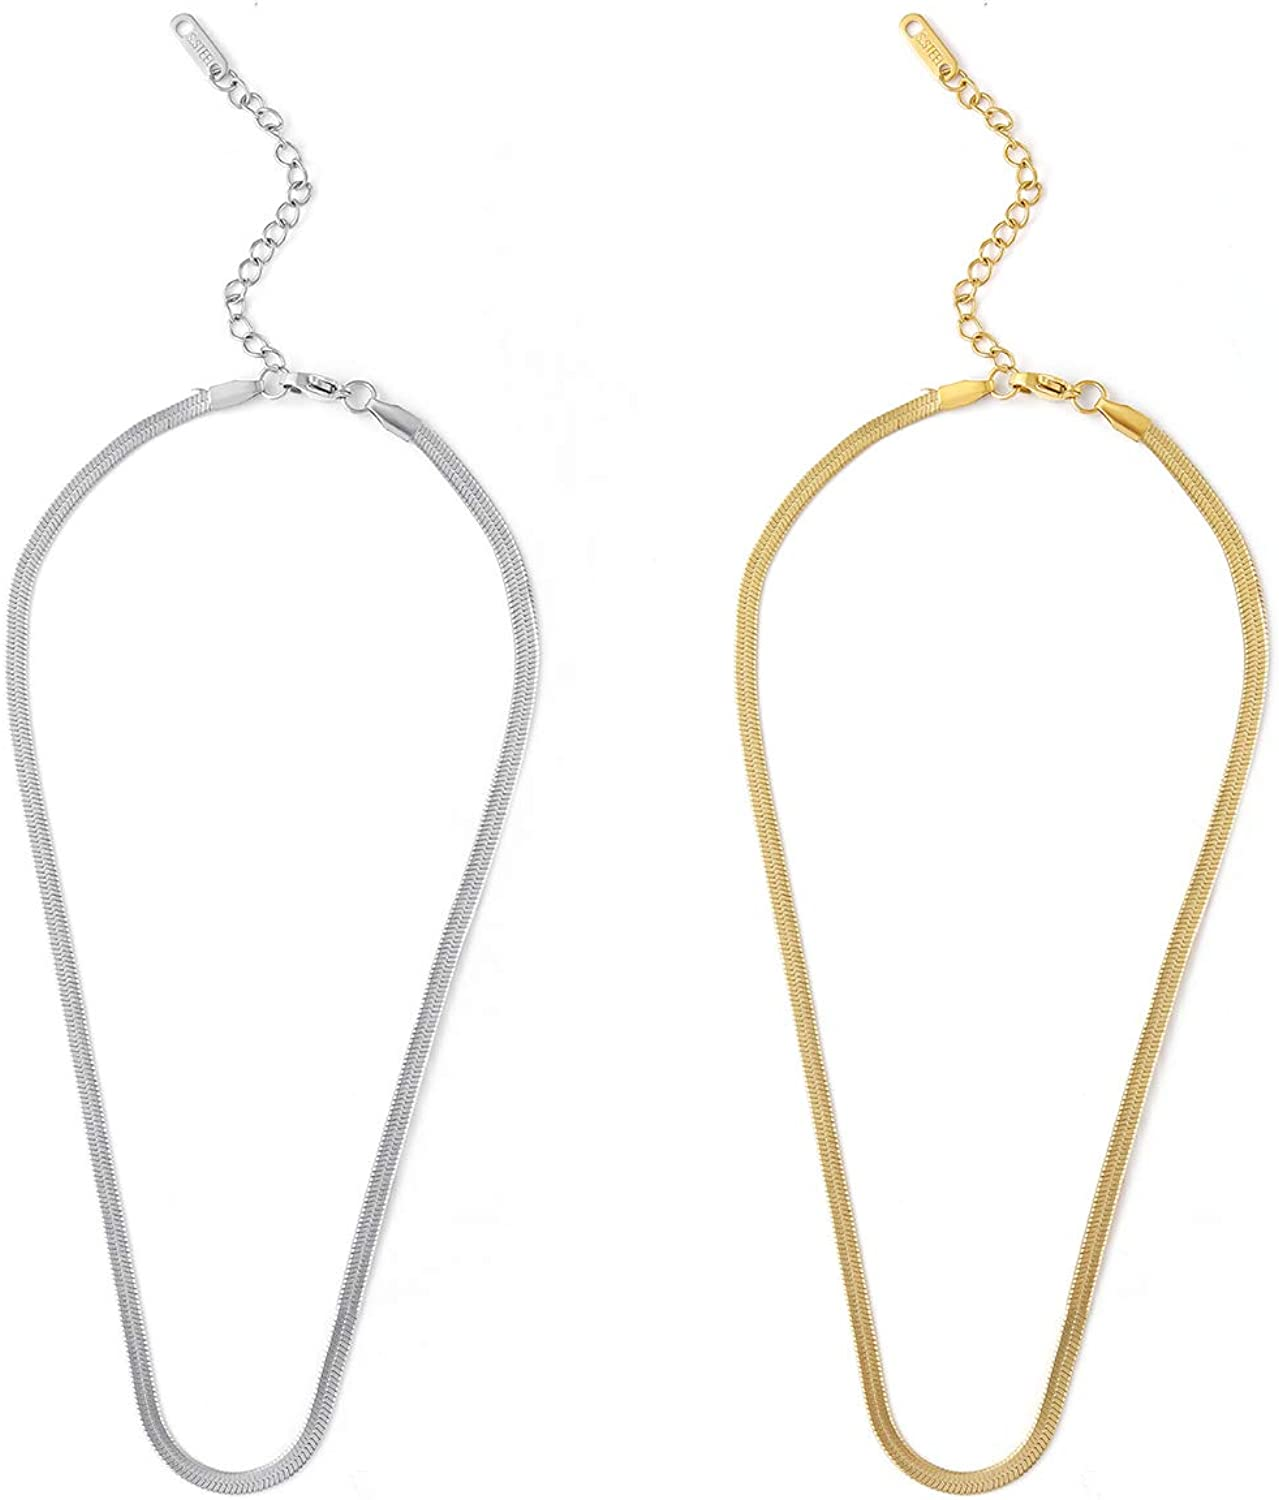 14K Gold Plated Personalized Popular products Safety Pin Necklace Popular standard